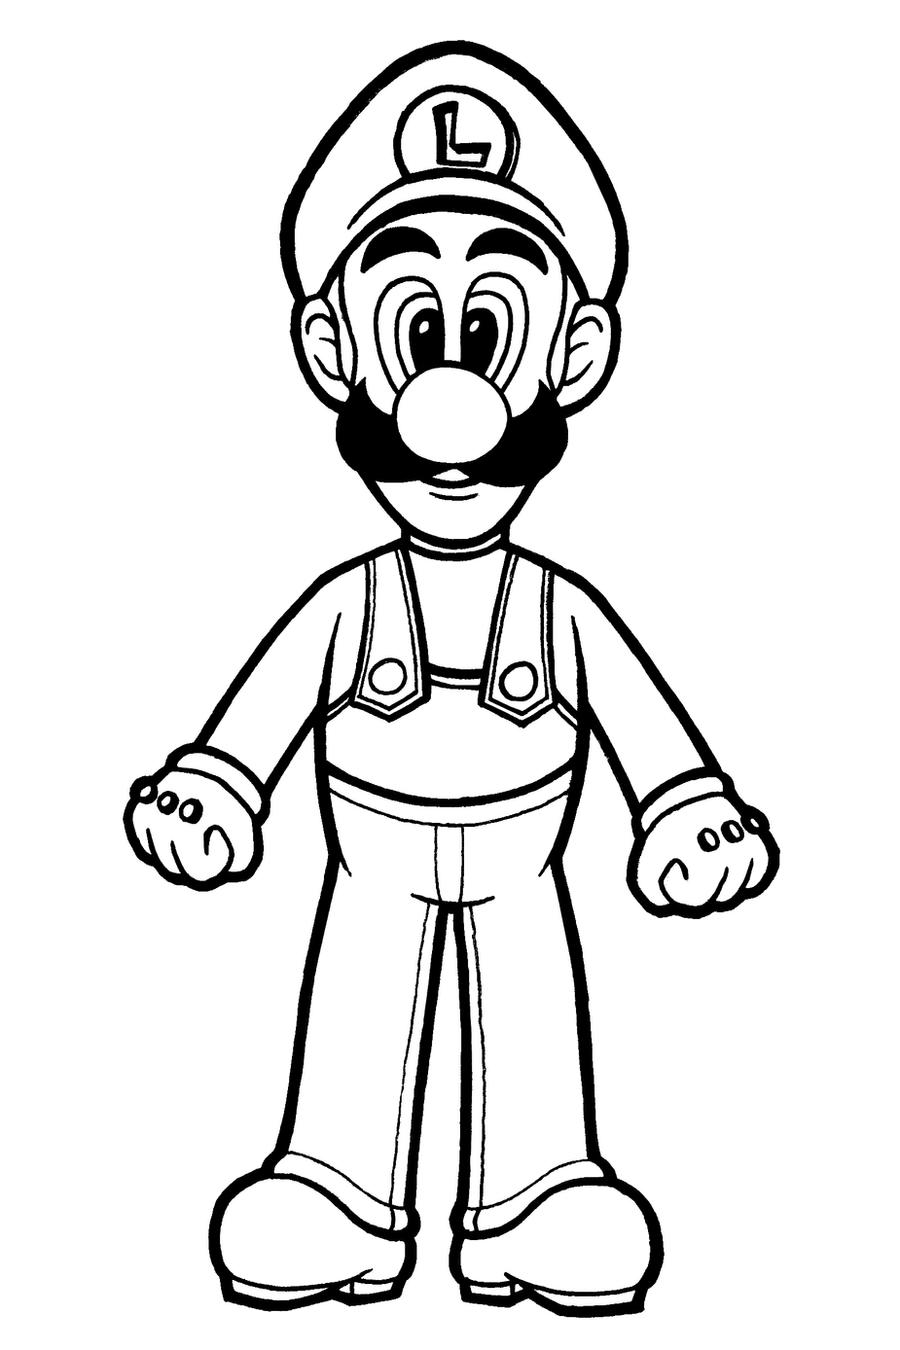 Luigi Coloring Page By Spiritvii On Deviantart Coloring Pages Of Mario And Luigi